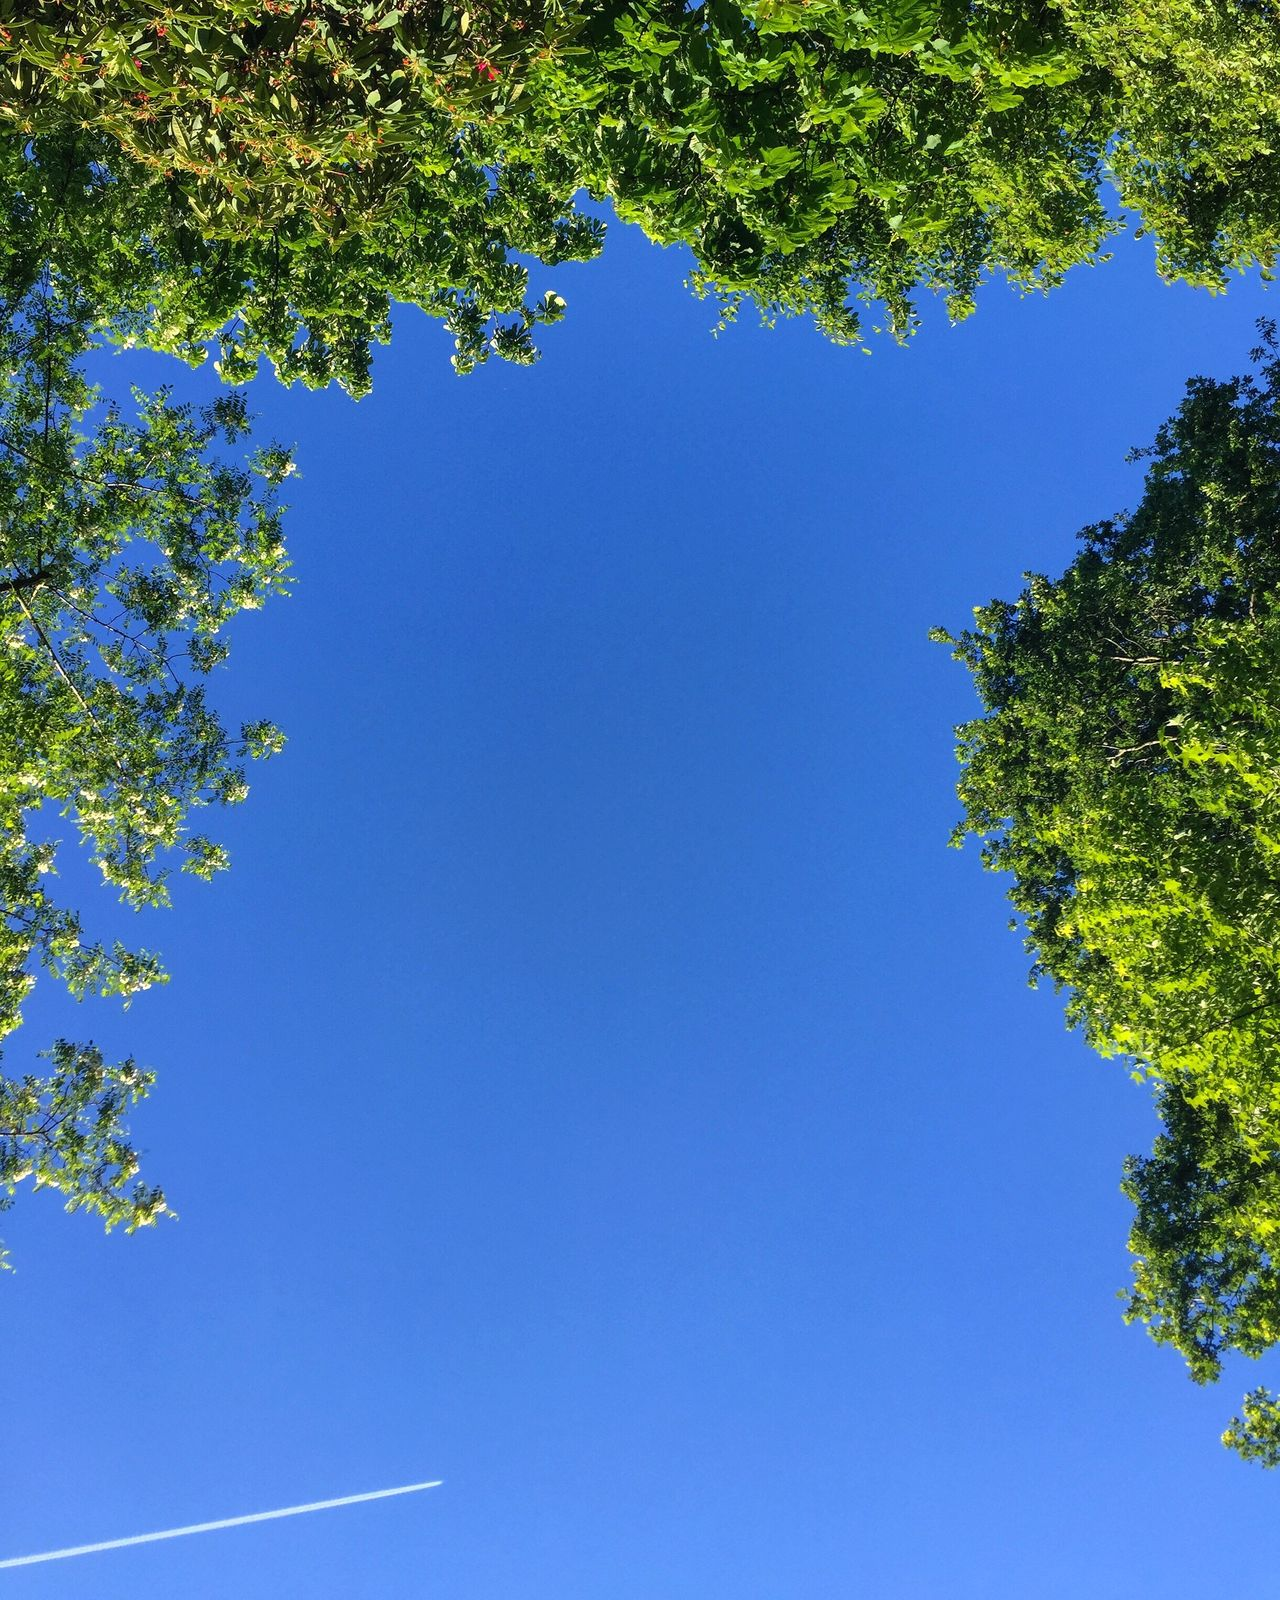 Take a moment and look up Tree Blue Low Angle View Growth Clear Sky Nature Branch No People Day Beauty In Nature Outdoors Sky Freshness The Great Outdoors - 2017 EyeEm Awards